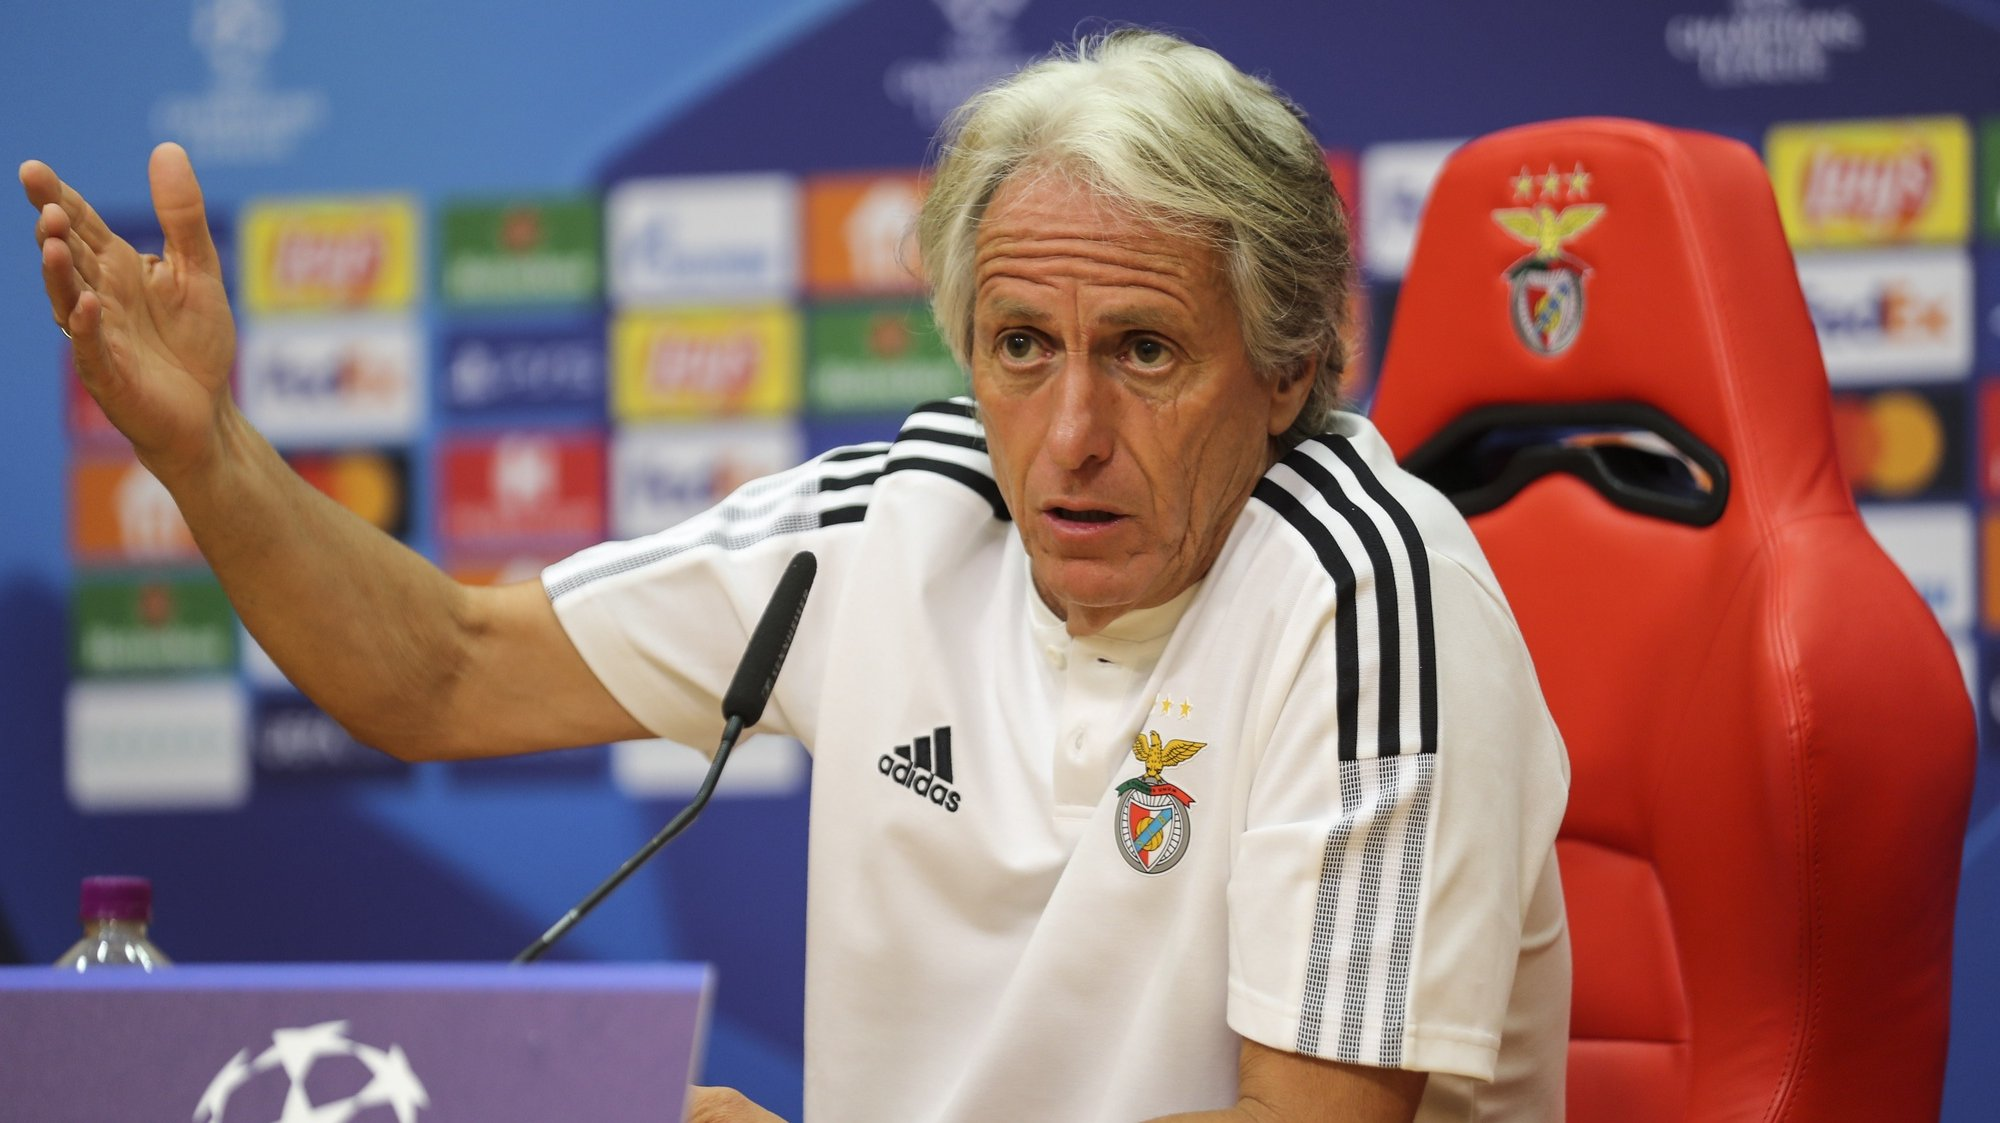 Benfica's head coach Jorge Jesus during the press conference at Benfica's training camp in Seixal prior to tomorrows Champion League group E soccer match against Dinamo Kyiv, Seixal, Portugal, 13 of September 2021.  MIGUEL A. LOPES/LUSA